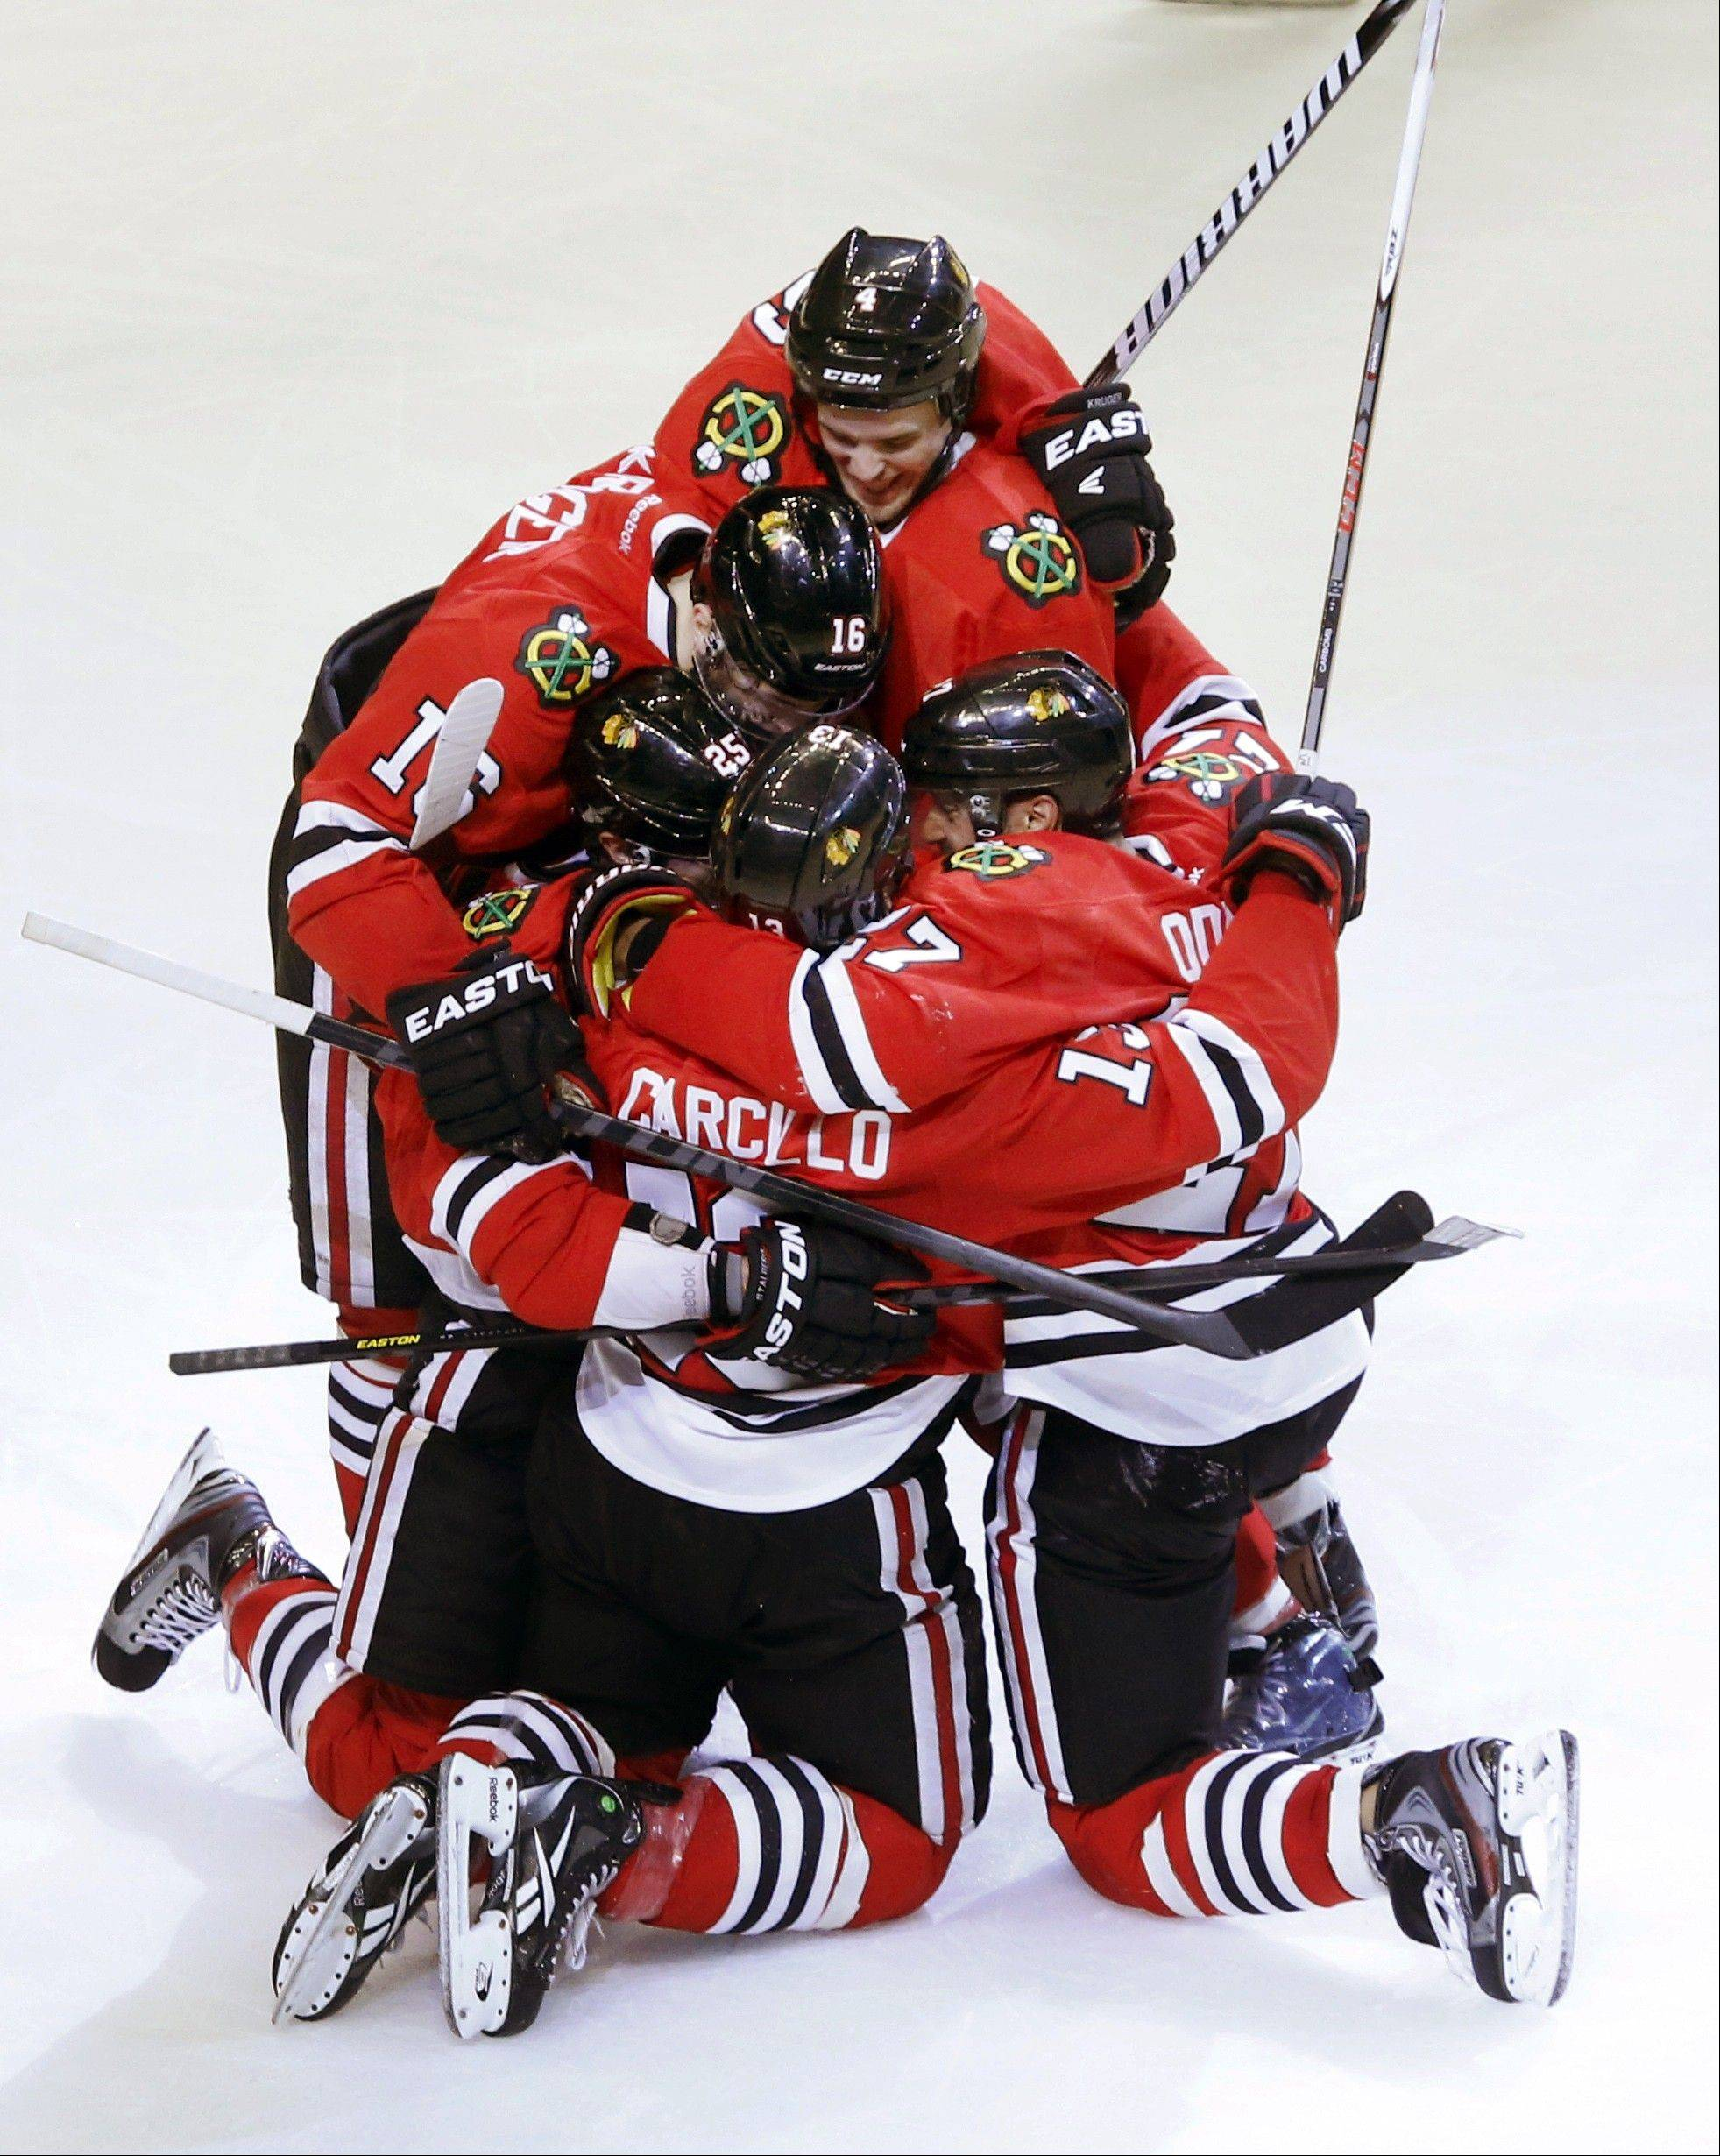 Blackhawks senior adviser Scotty Bowman says depth and team play in all phases is why this year�s team has a shot at all-time greatness.